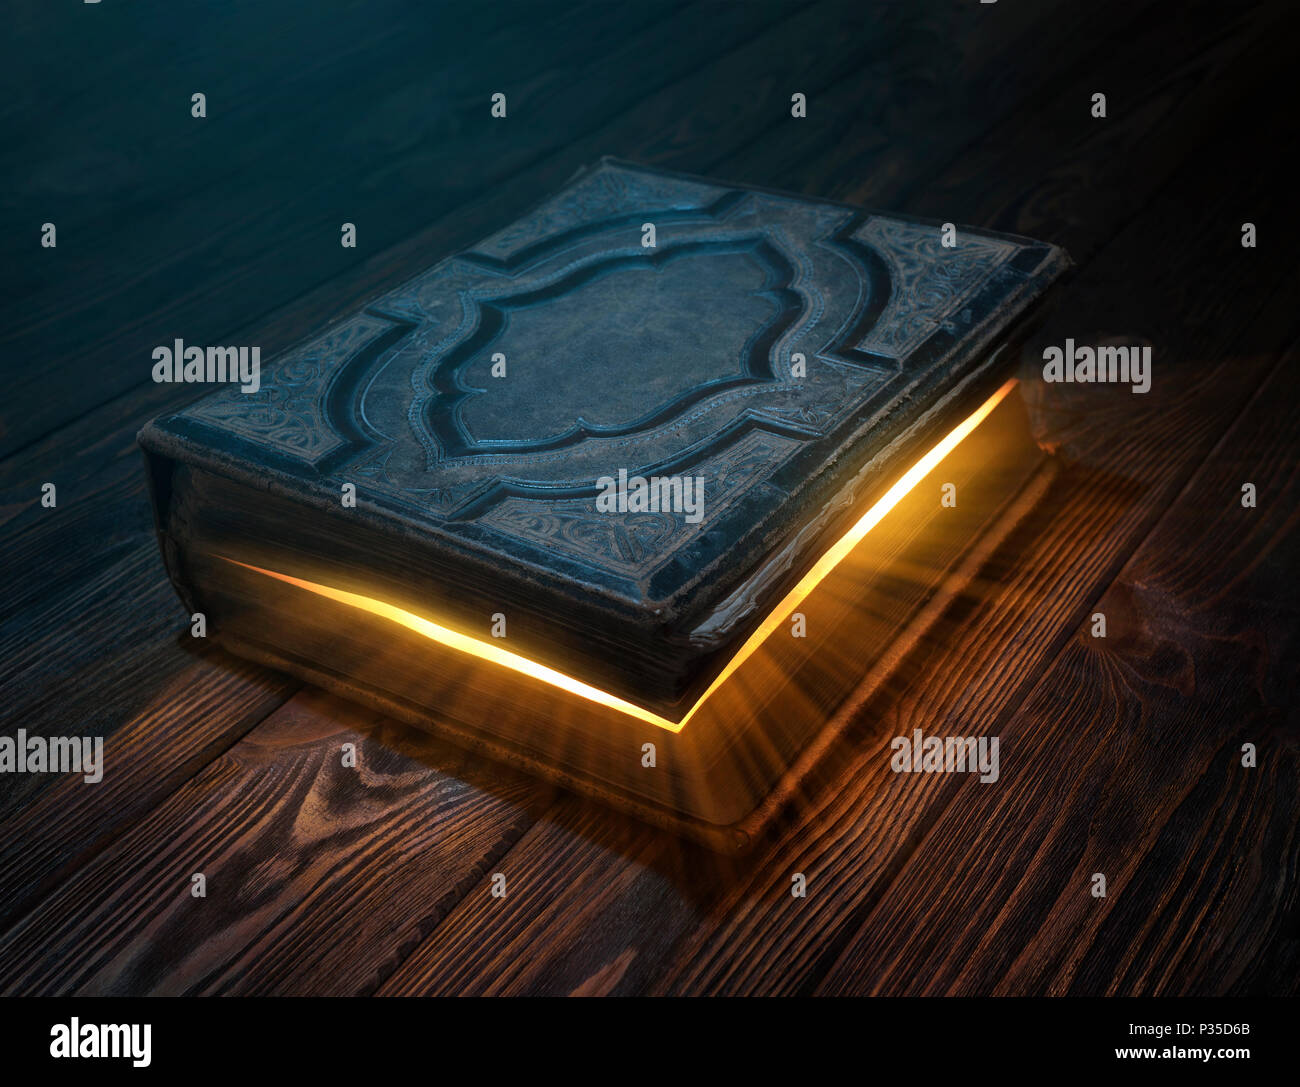 Old magic book on wooden table with light rays coming out form instide - Stock Image